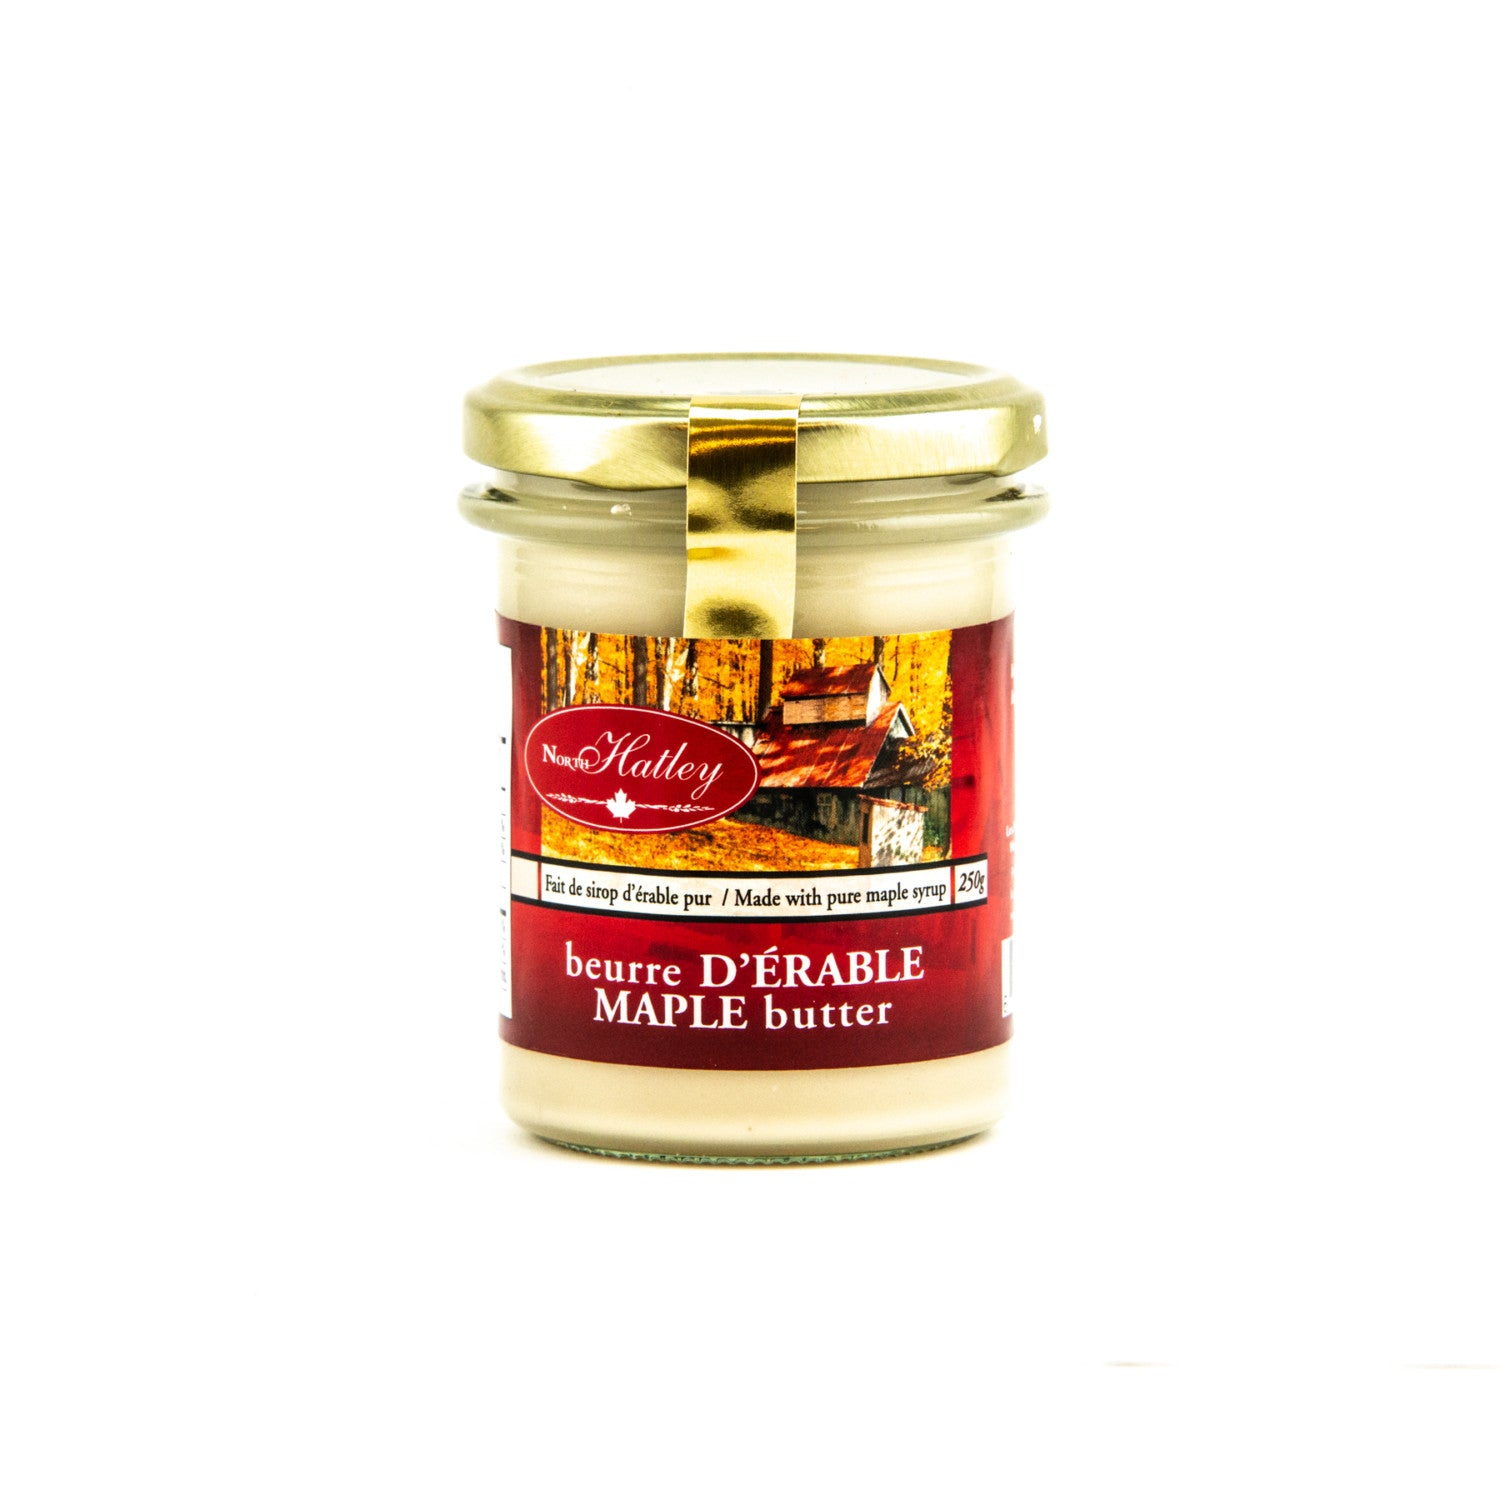 Beurre d'érable North Hatley 250 g